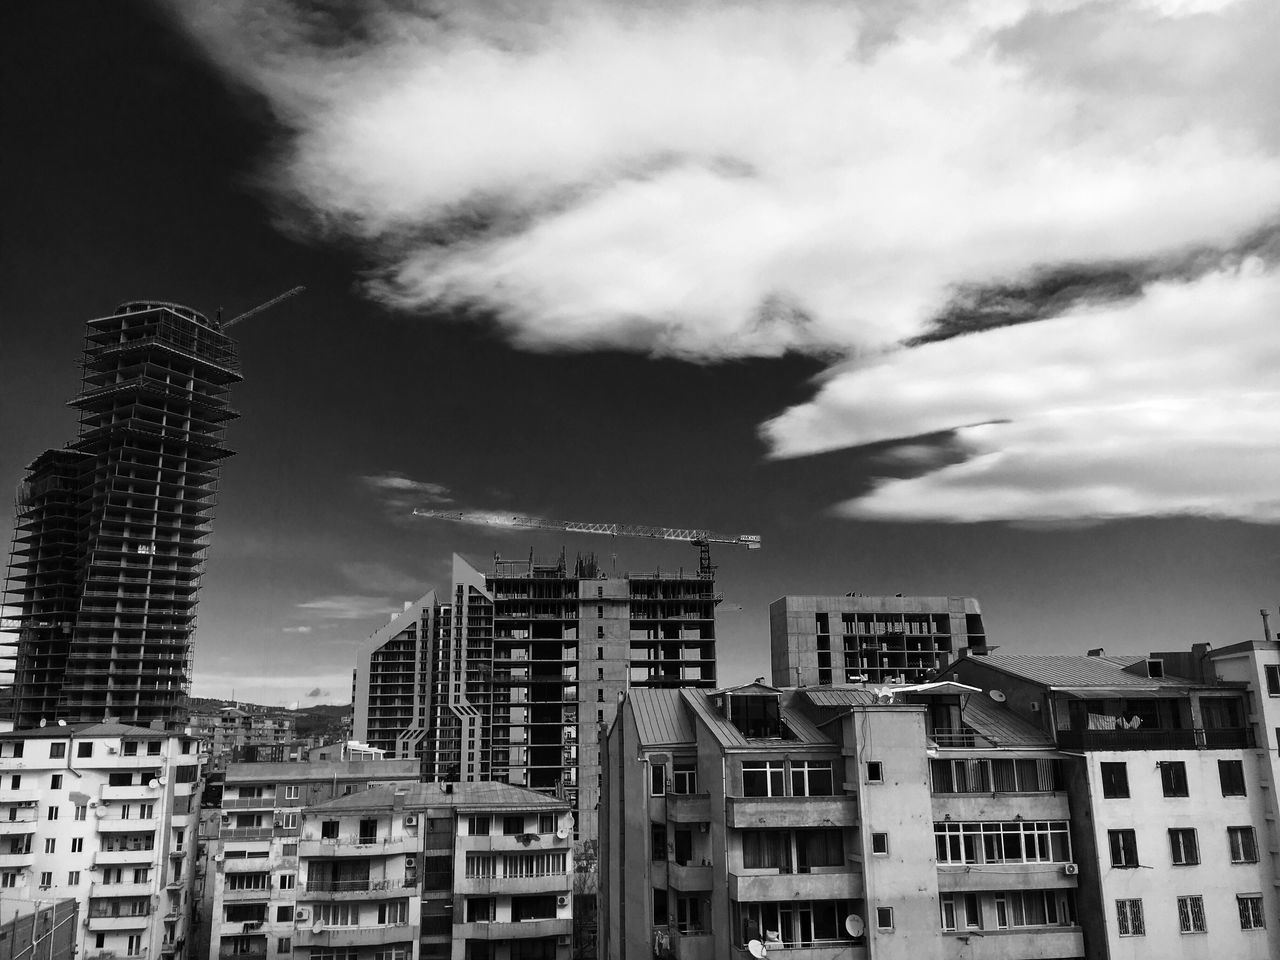 B&W construction site 🏗🔨🏢 Building Exterior Architecture Built Structure City Sky Cloud - Sky No People Skyscraper Outdoors Day Cityscape Balcony View Clouds And Sky Windows Balconies Crane Construction Construction Site Tbilisi Georgia Block Of Flats Old And New Architecture Old And New Cloud Porn Flying High